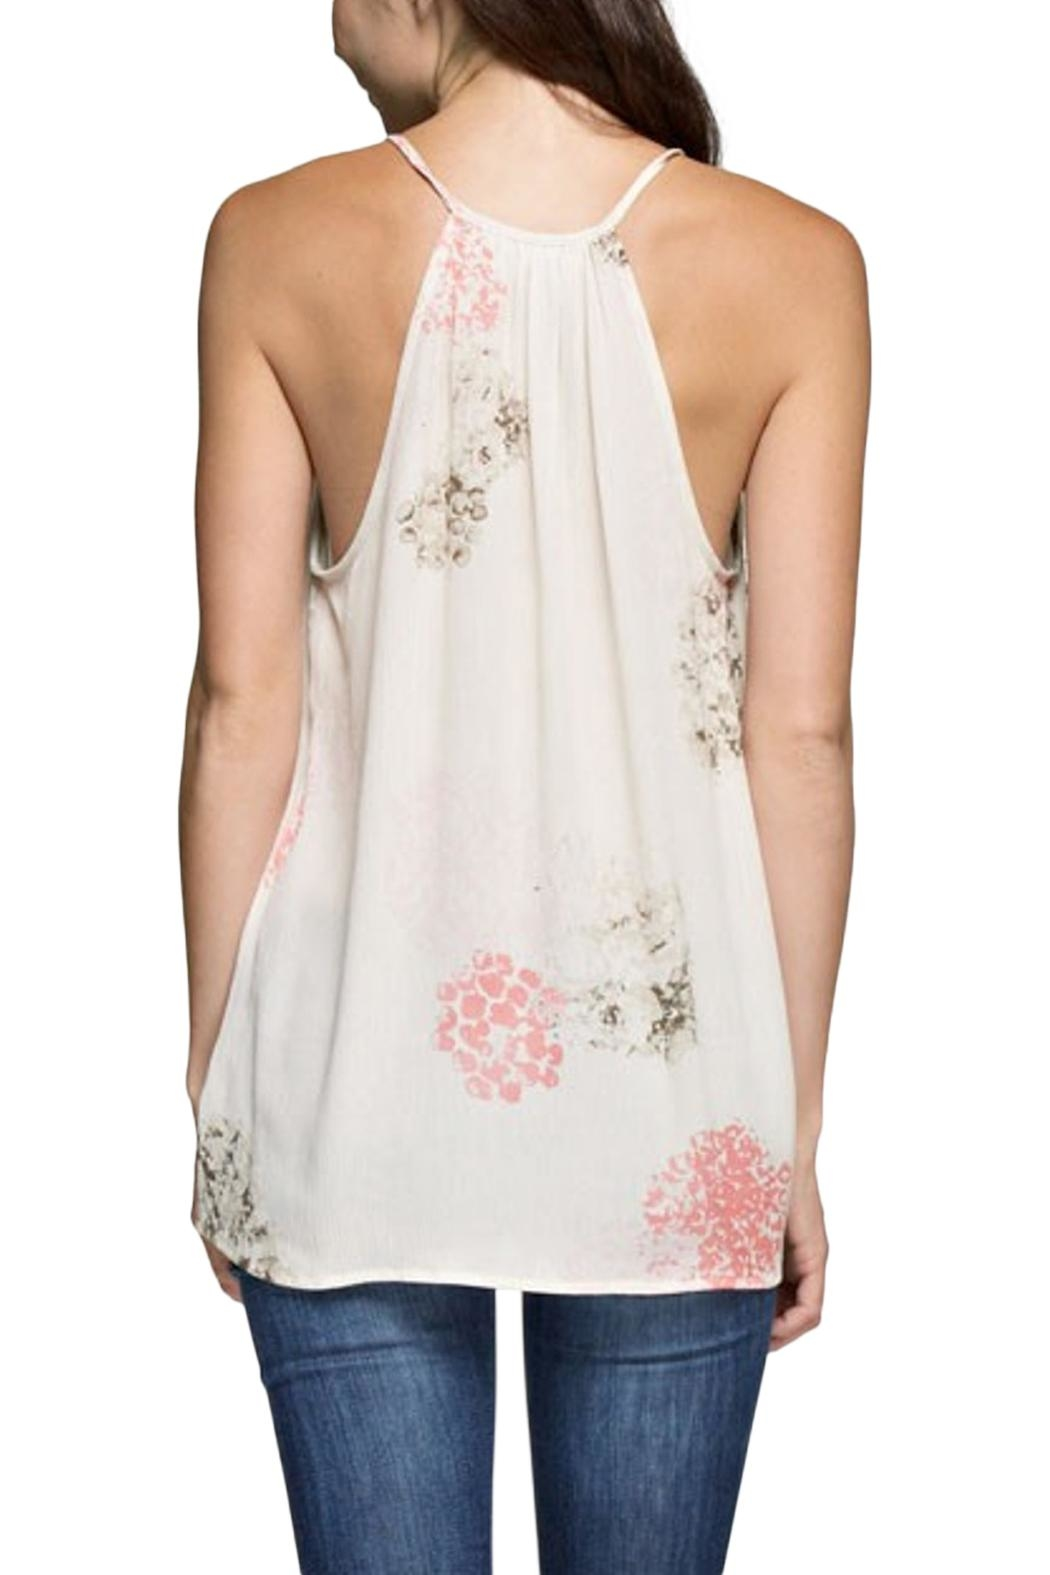 Lovestitch Floral Sleeveless Top - Front Full Image